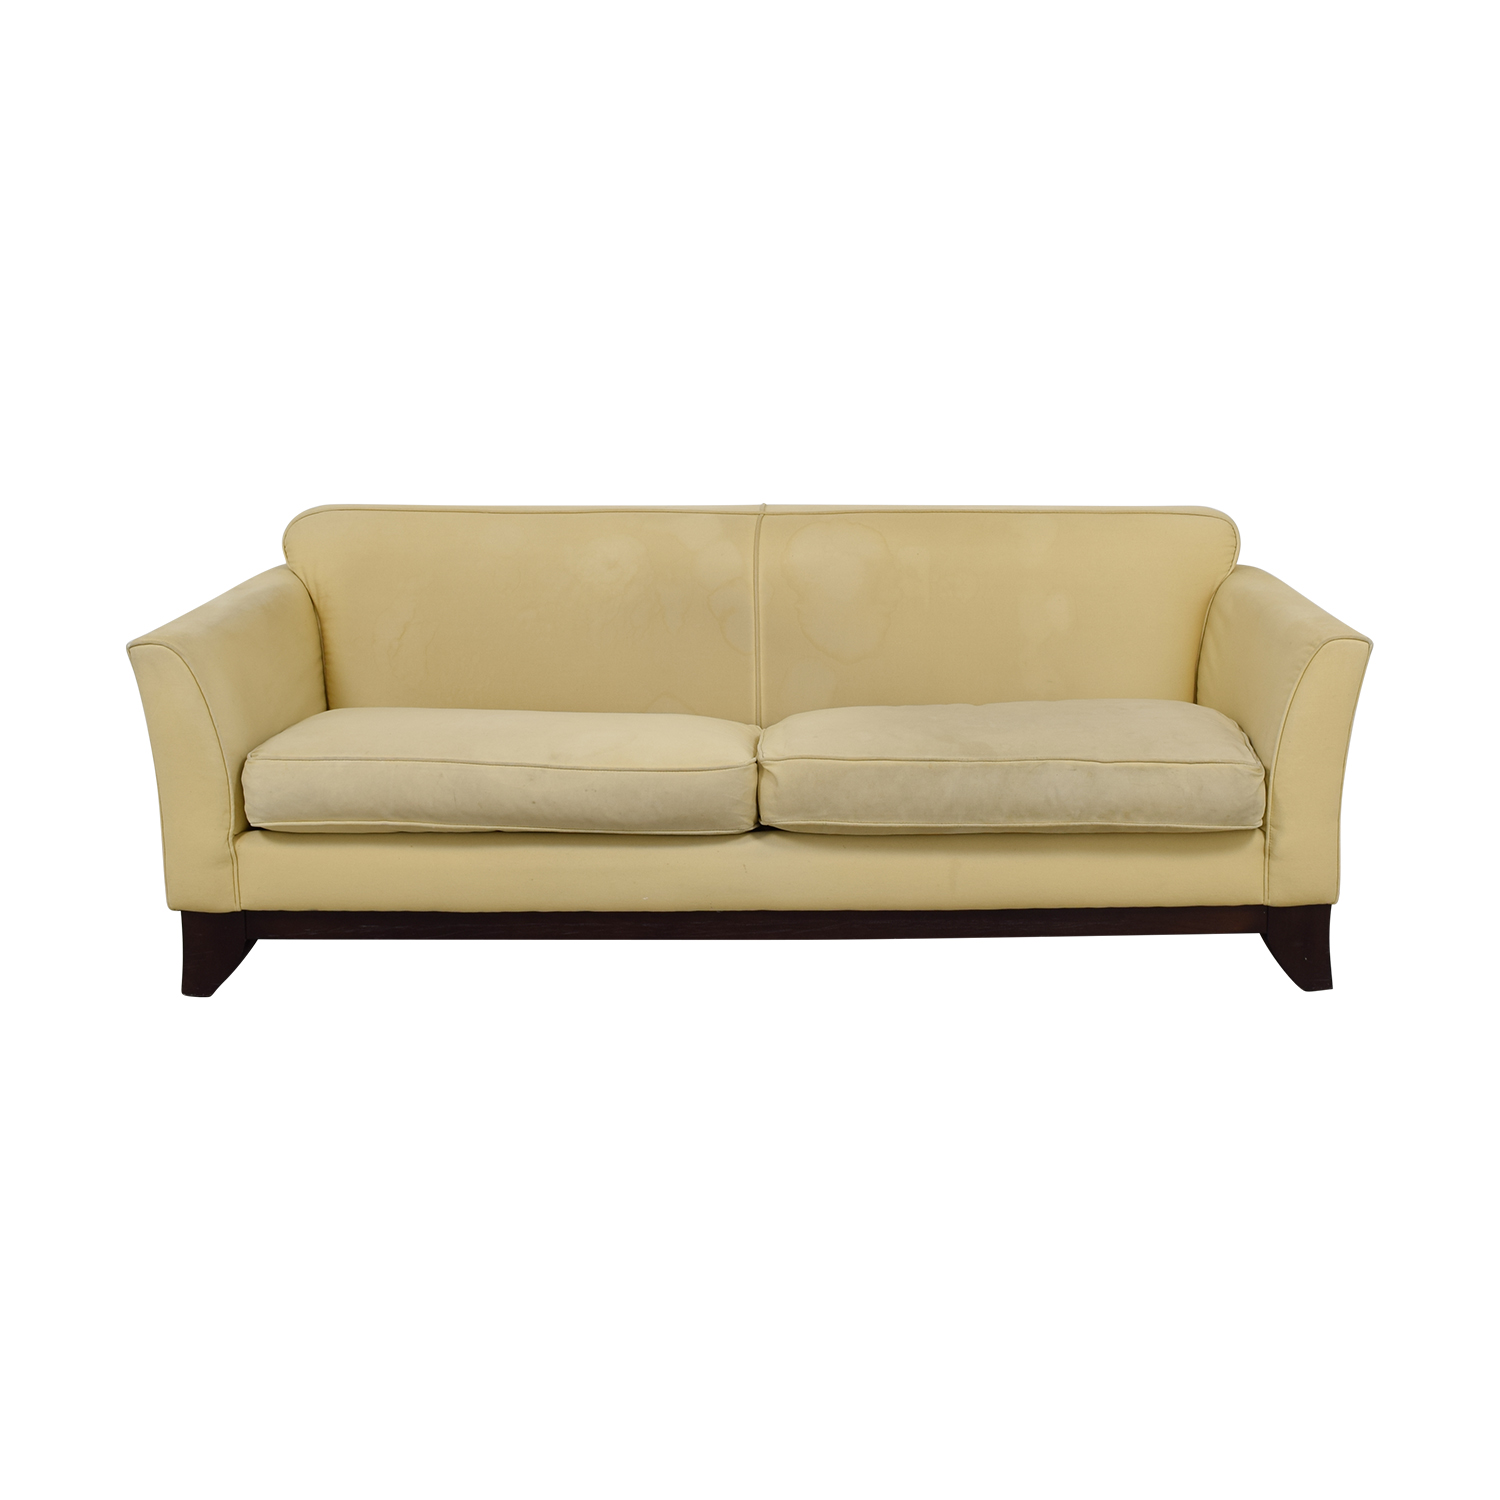 shop Pottery Barn Beige Upholstered Two-Cushion Sofa Pottery Barn